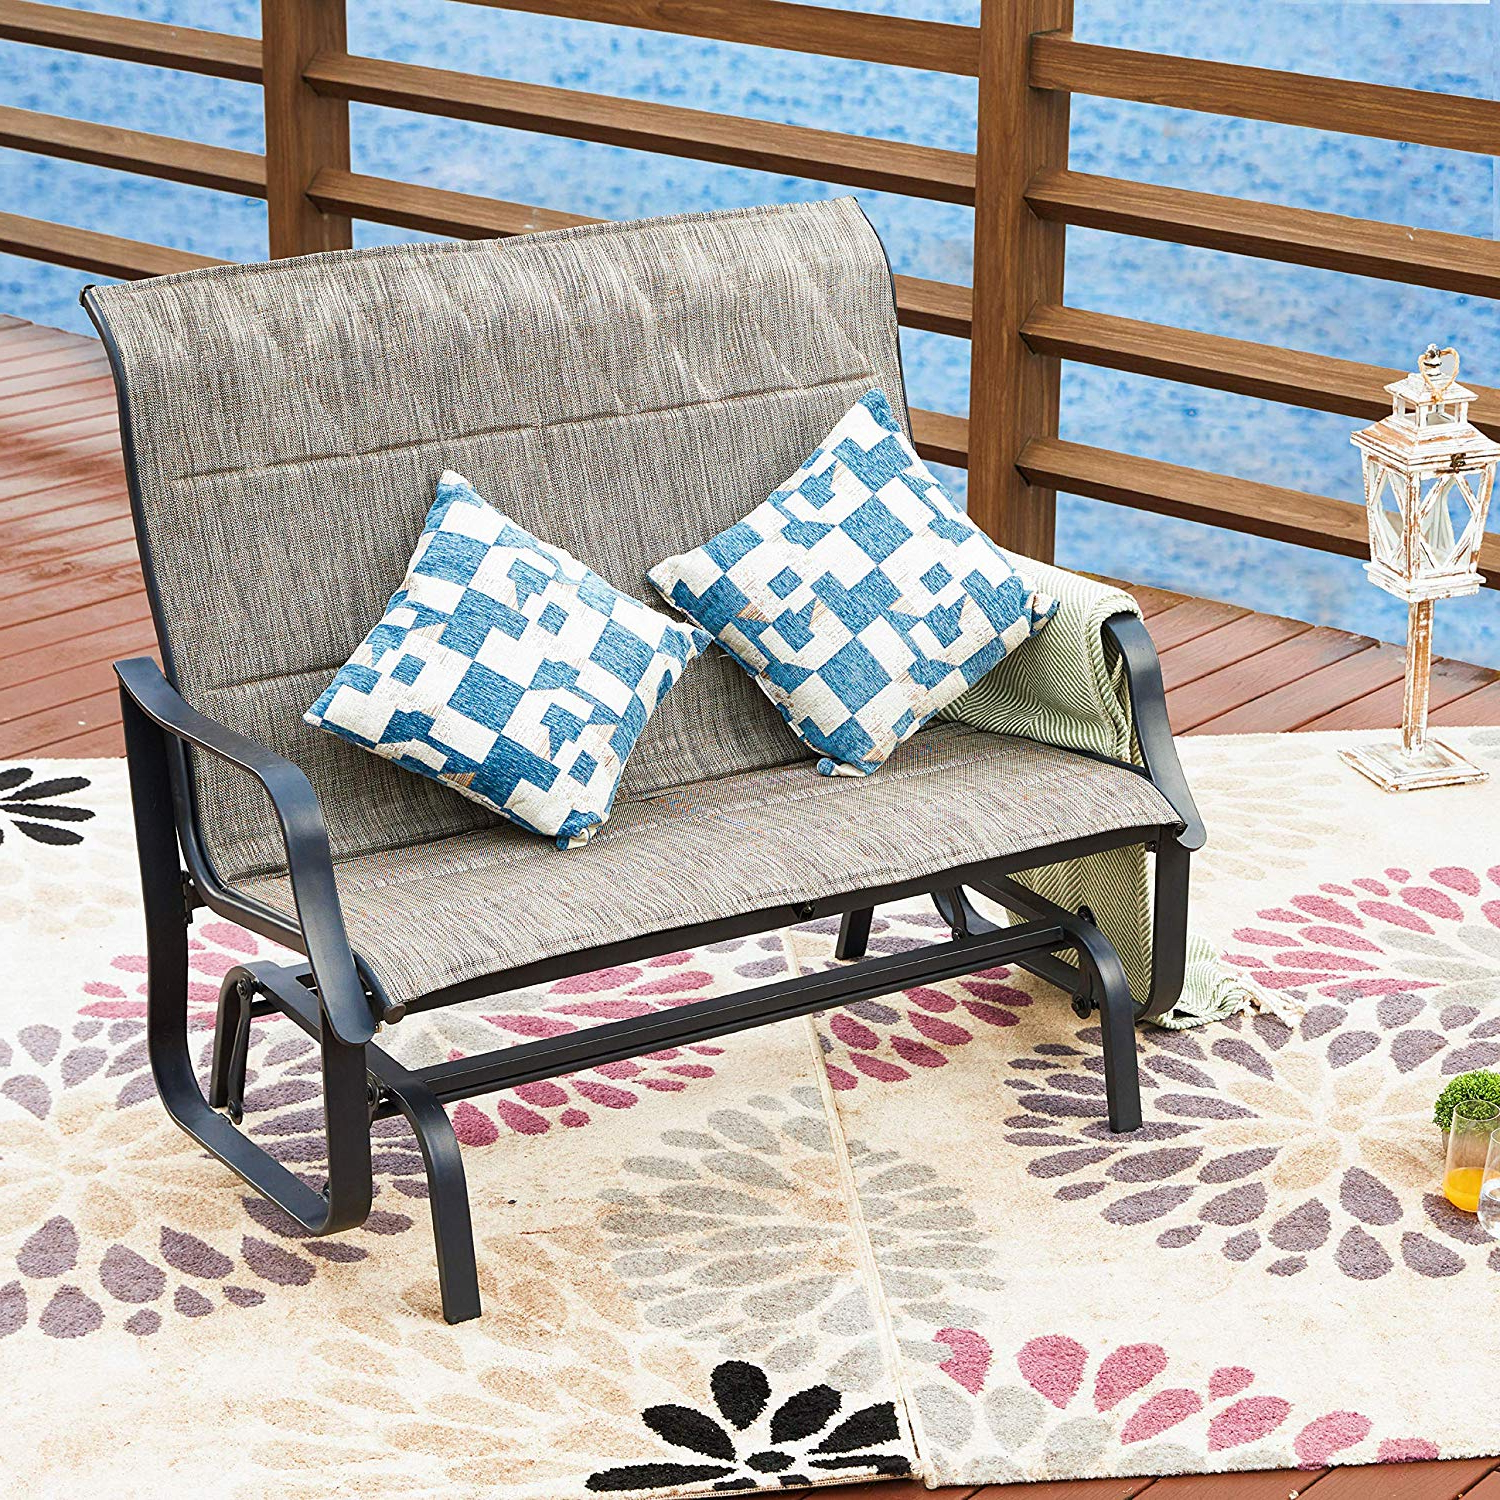 Amazon: Lokatse Home Patio Outdoor Glider Seat Bench 2 Within Preferred 2 Person Loveseat Chair Patio Porch Swings With Rocker (View 13 of 30)